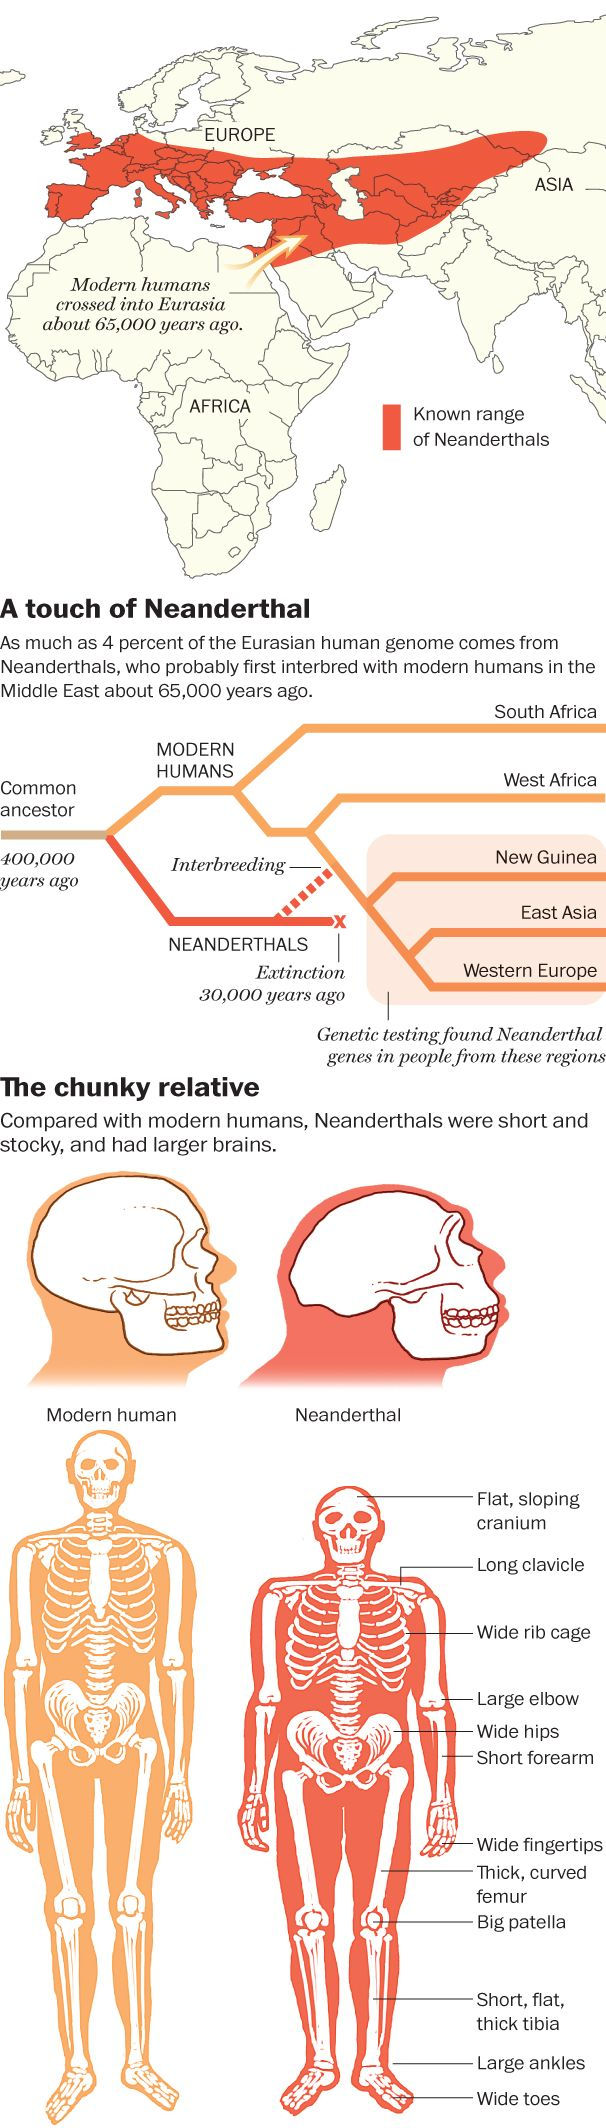 Mark of the Neanderthal - The Washington Post